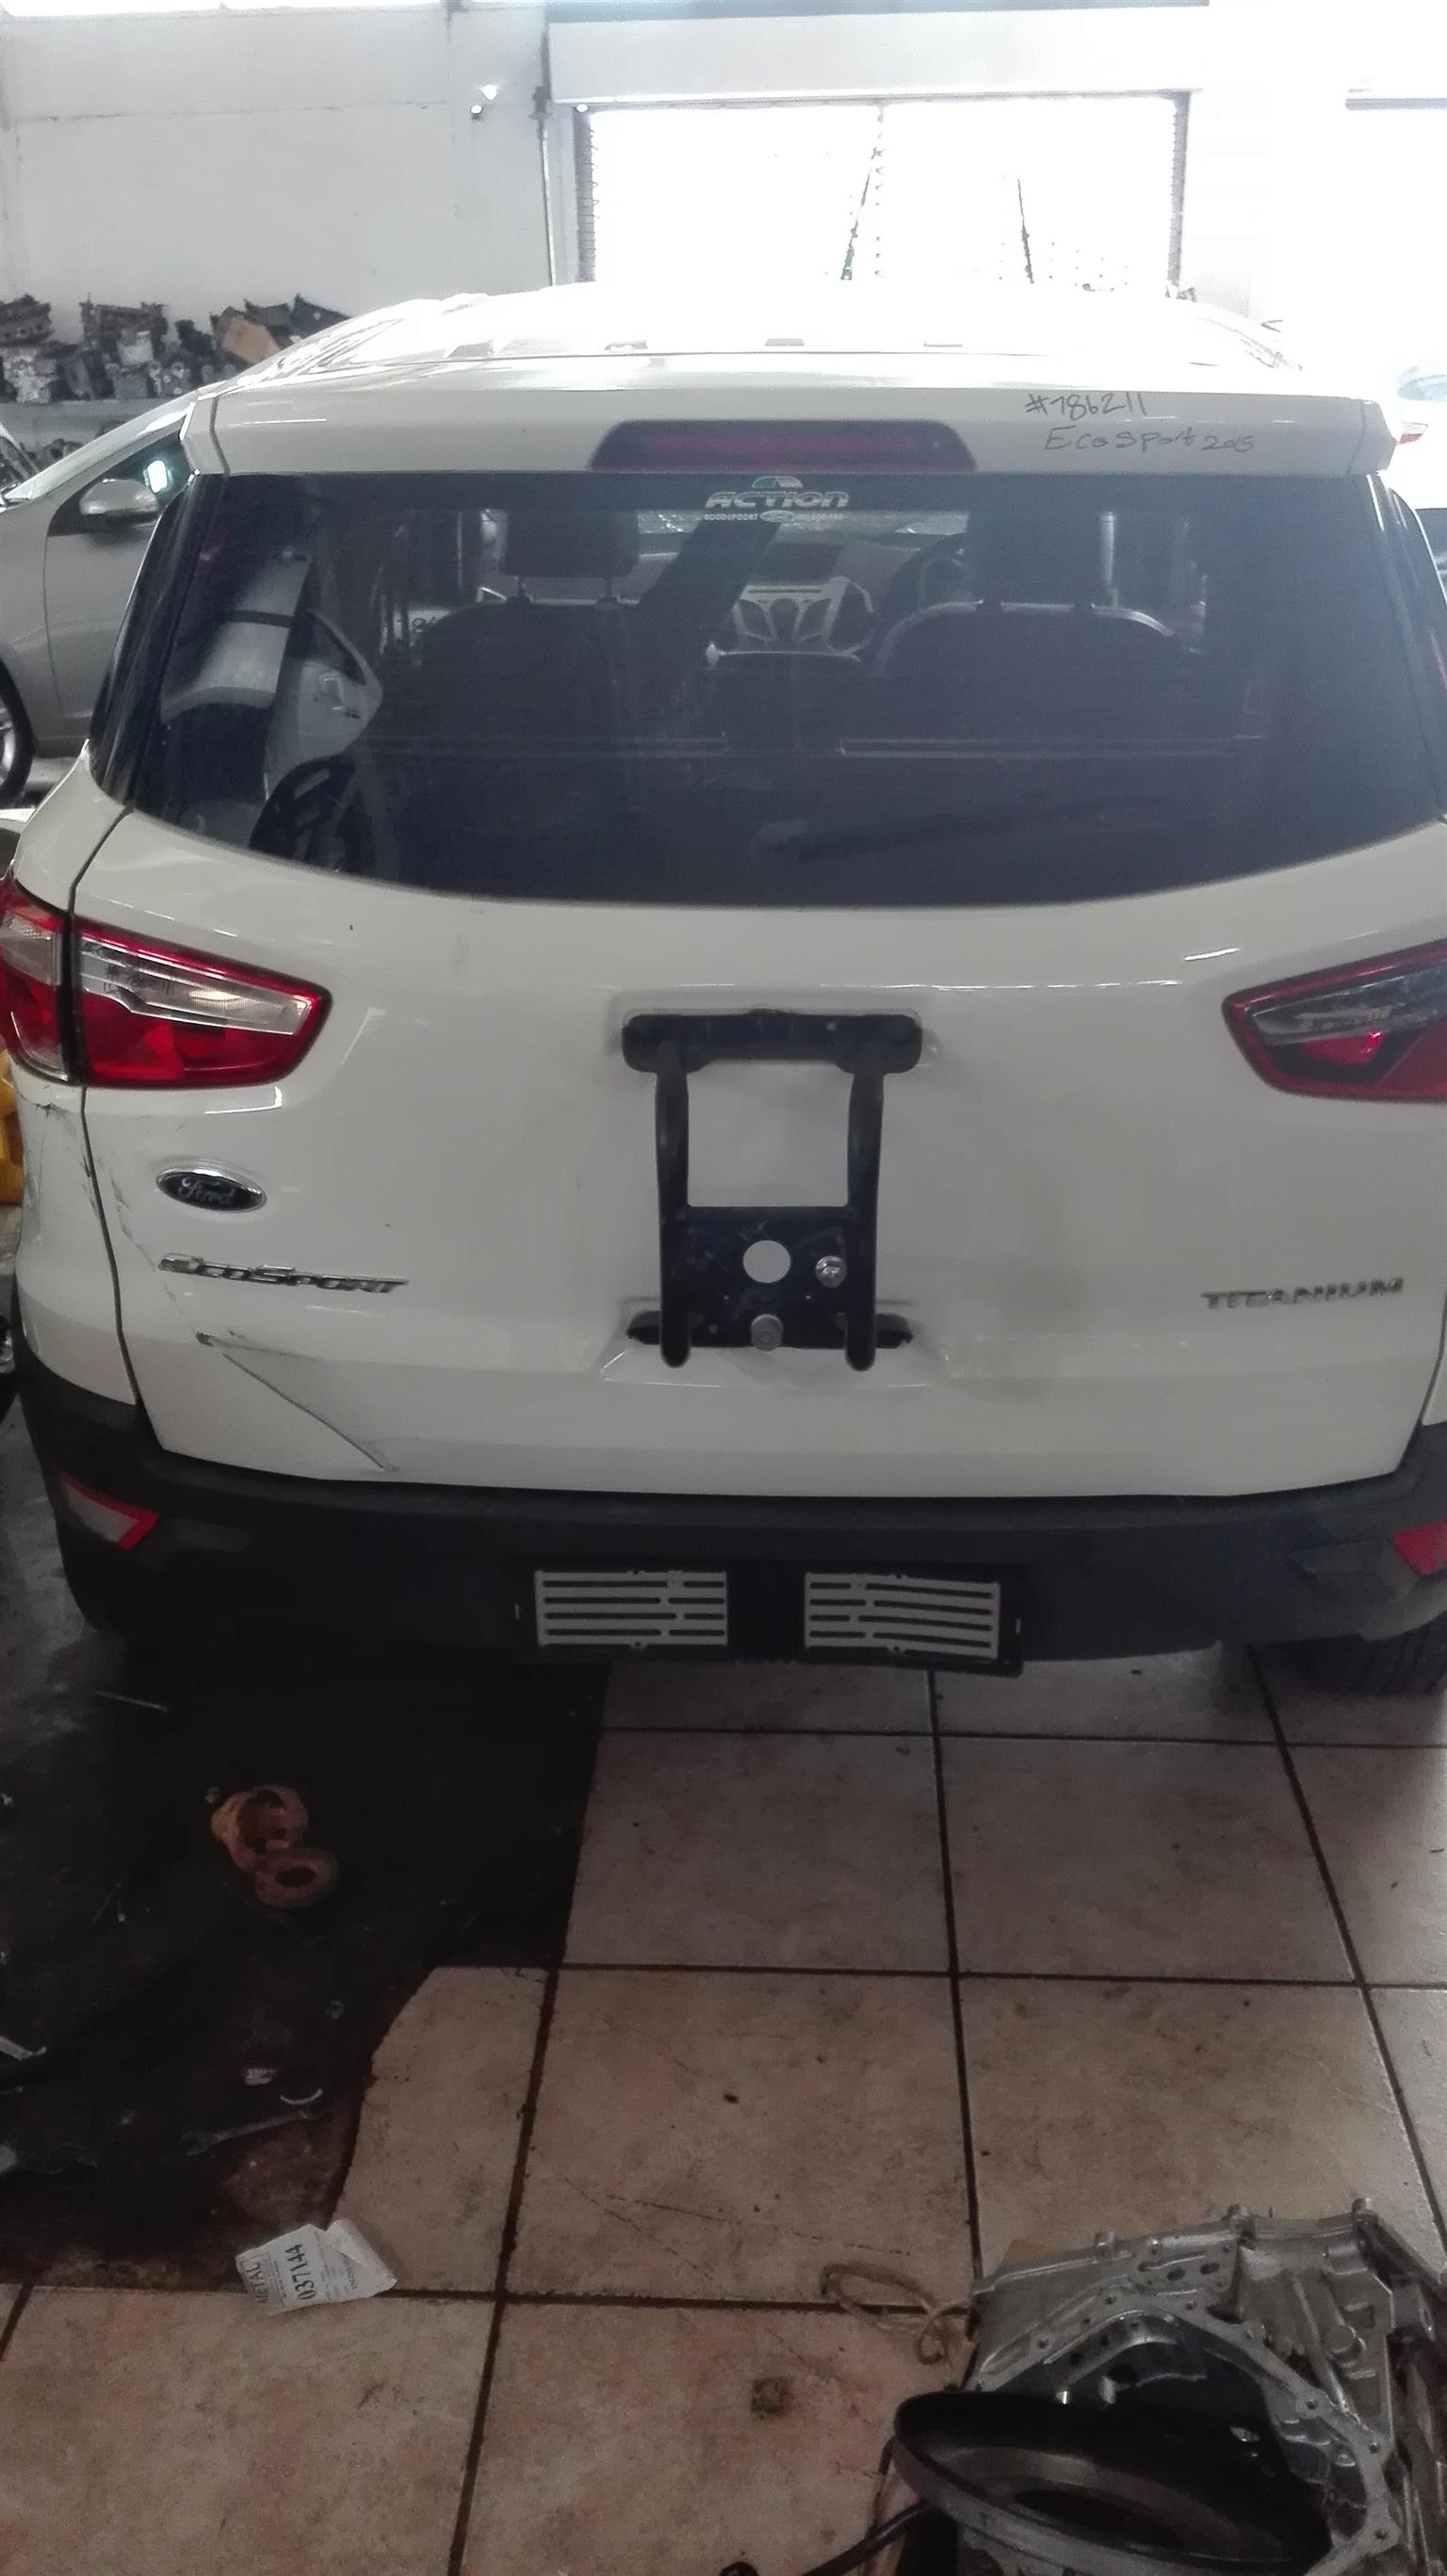 Ecosport stripping for spares (code 144119)